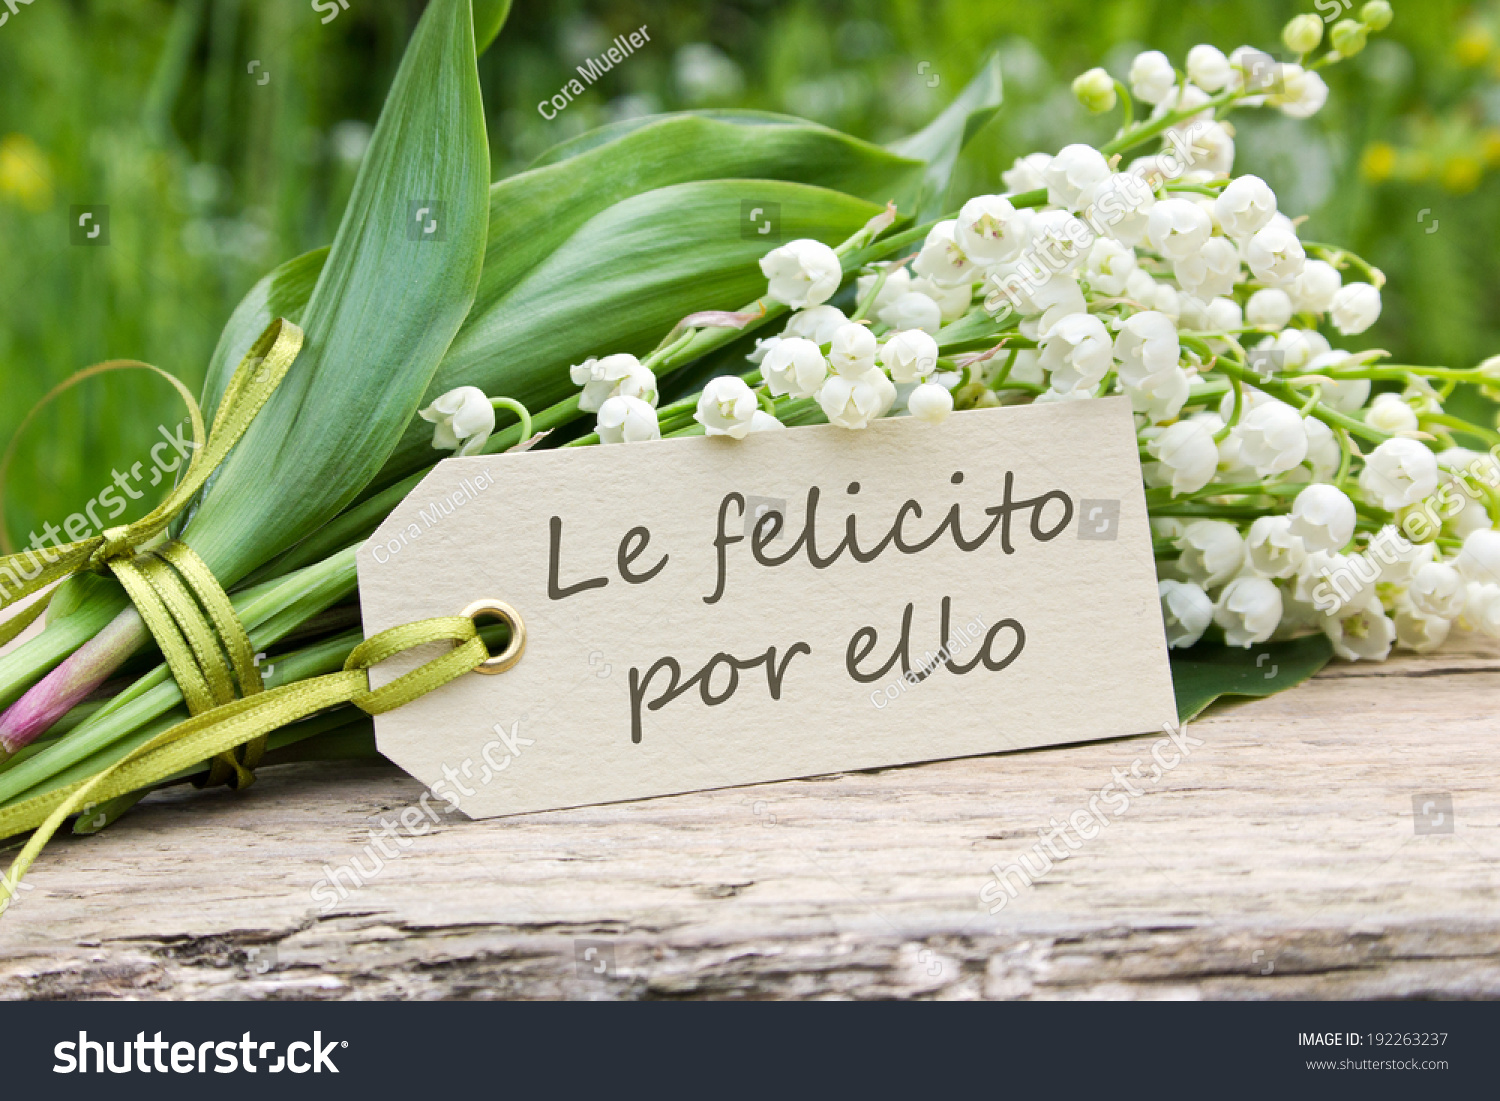 Spanish greeting card lily valley i congratulate stock photo spanish greeting card with lily of the valleyi congratulate you on this spanish izmirmasajfo